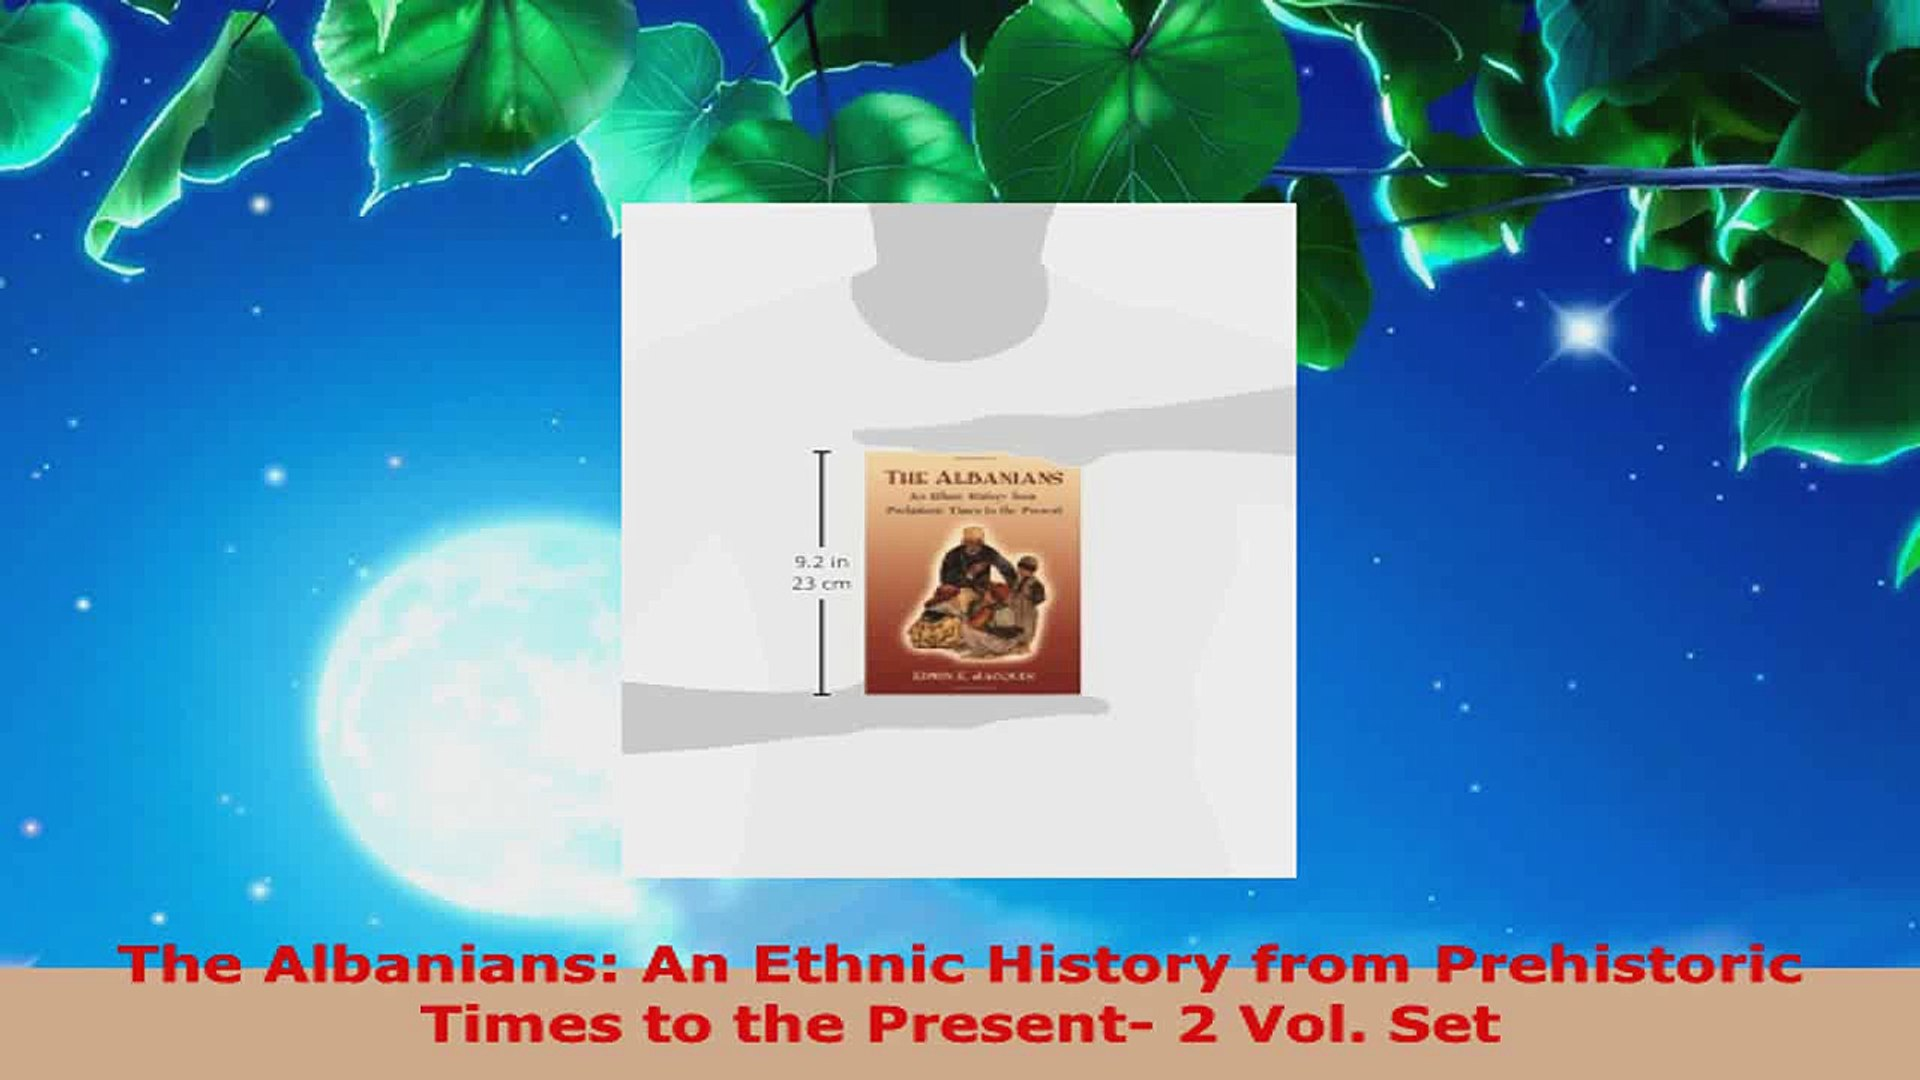 The Albanians: An Ethnic History from Prehistoric Times to the Present- 2 Vol. Set